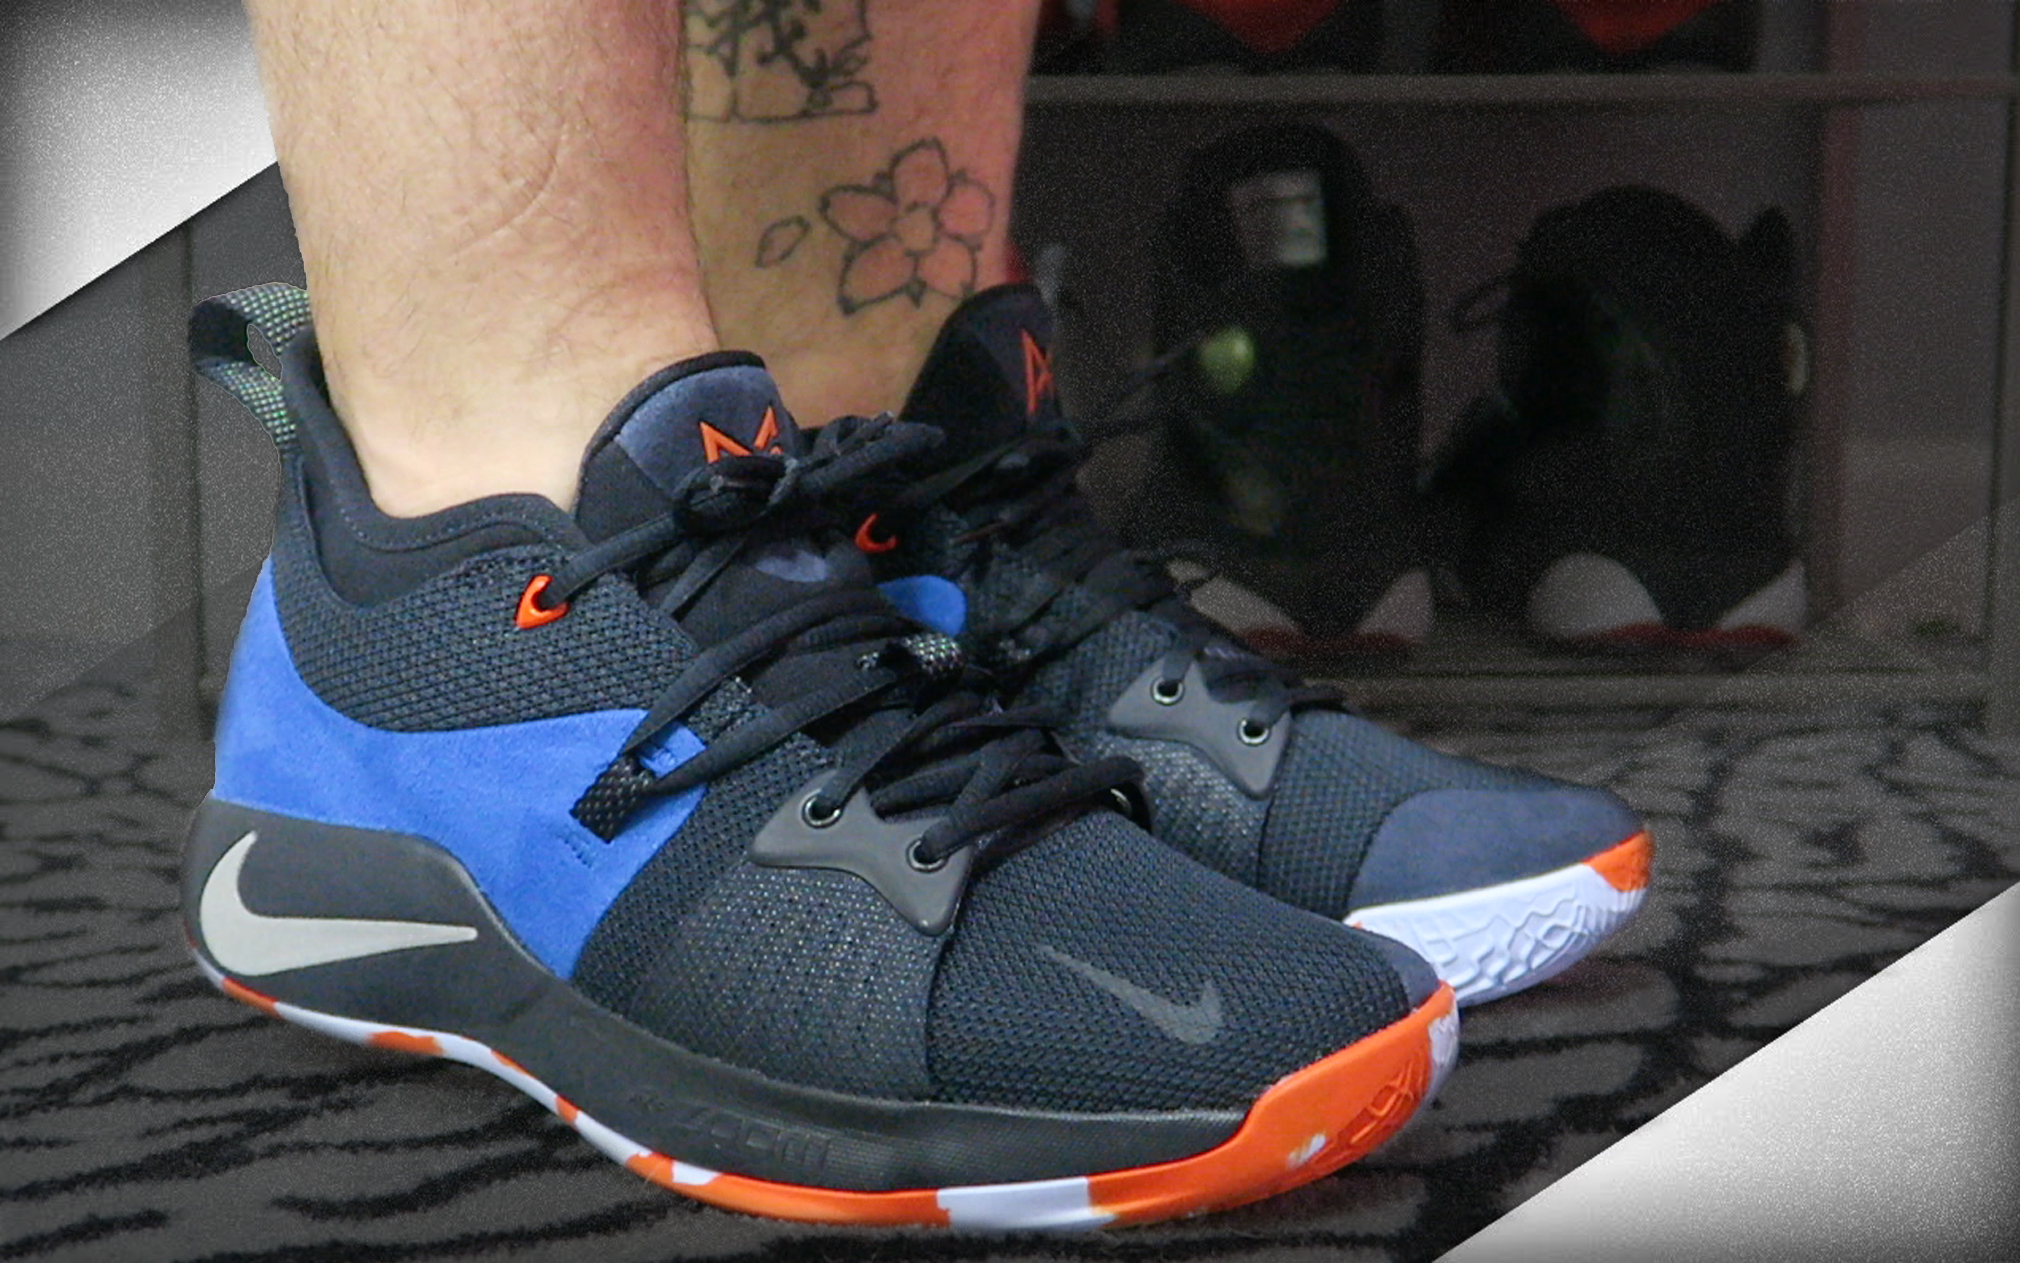 A Detailed Look at the Nike PG 2 'OKC'